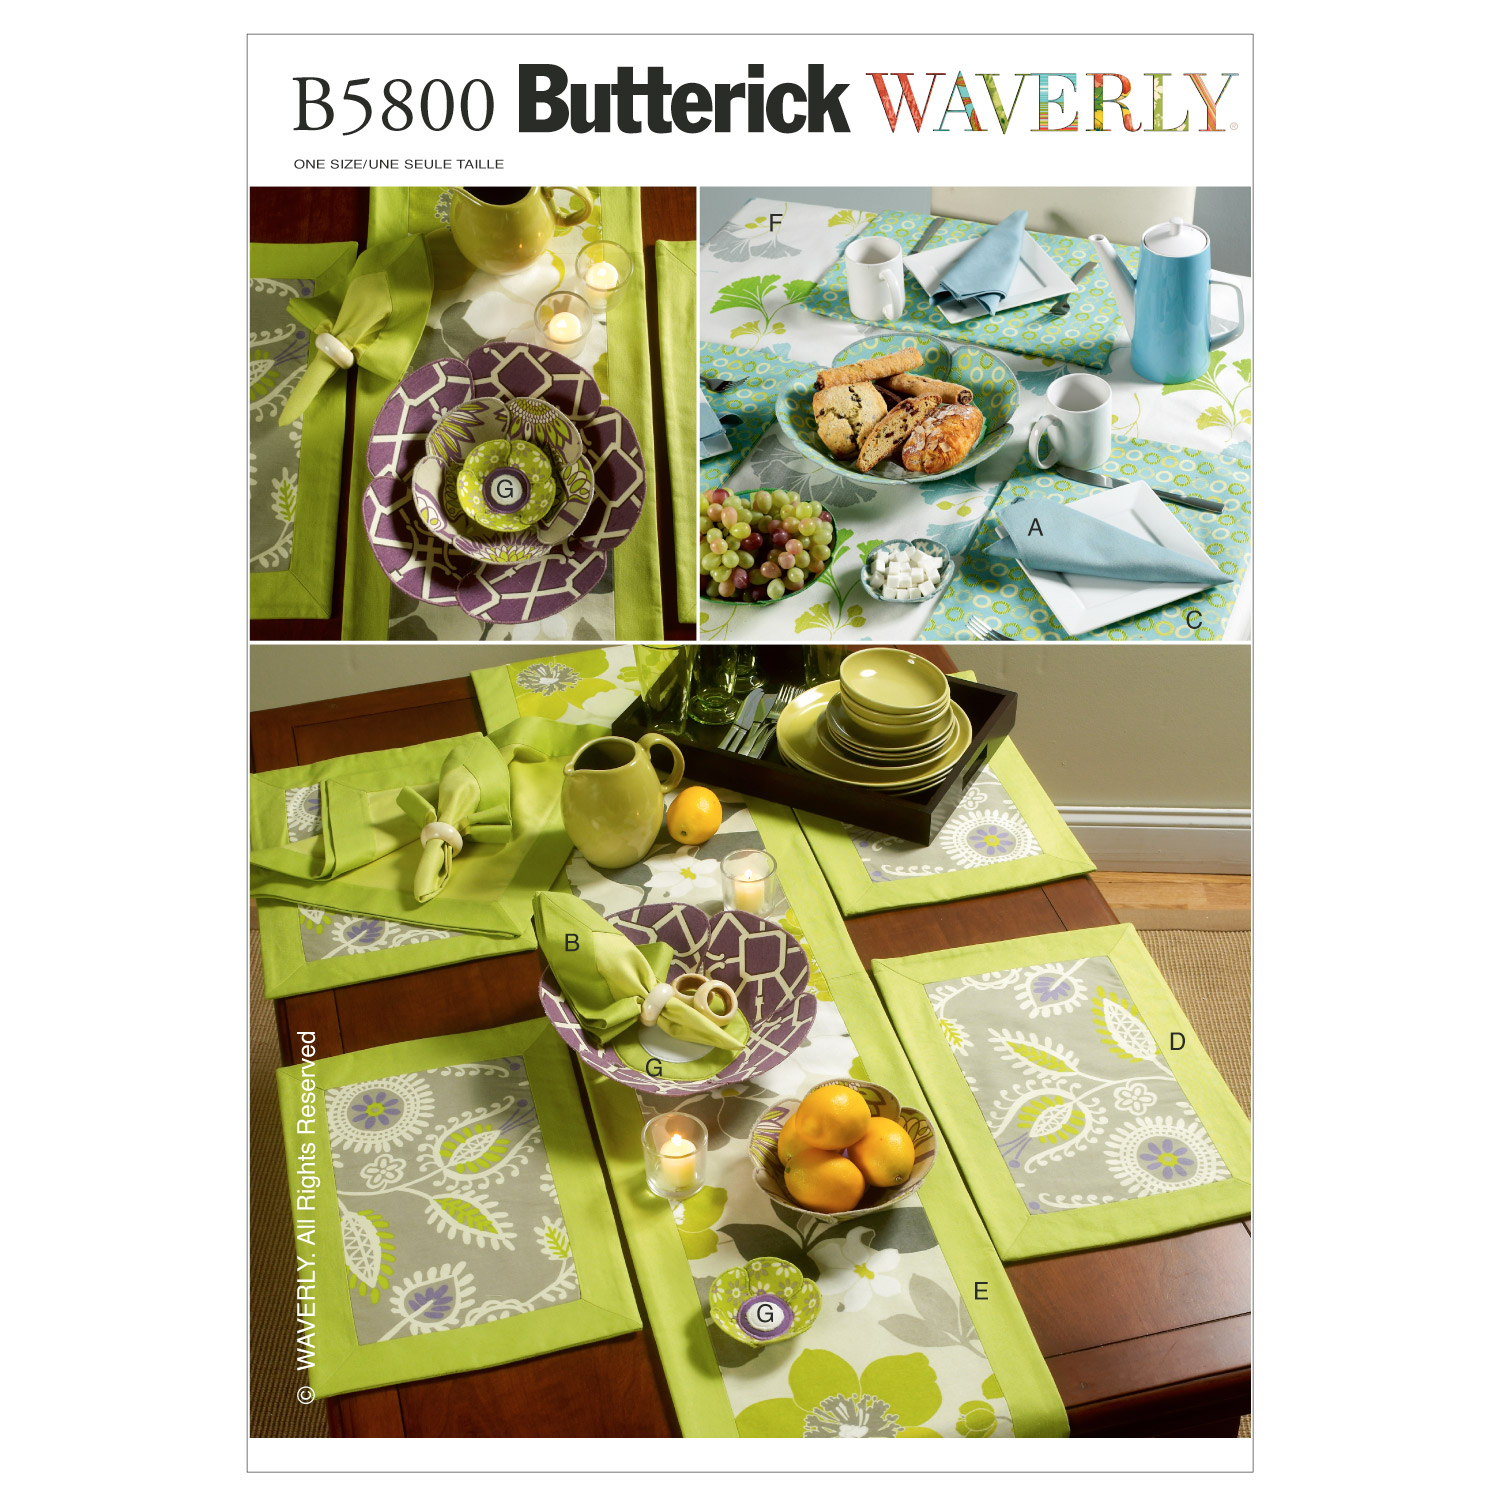 napkins placemats table runner cloth and flower bow one artistic accents tablecloth butterick crafts home accessory dark wood bedside cabinets target corner desk grill master